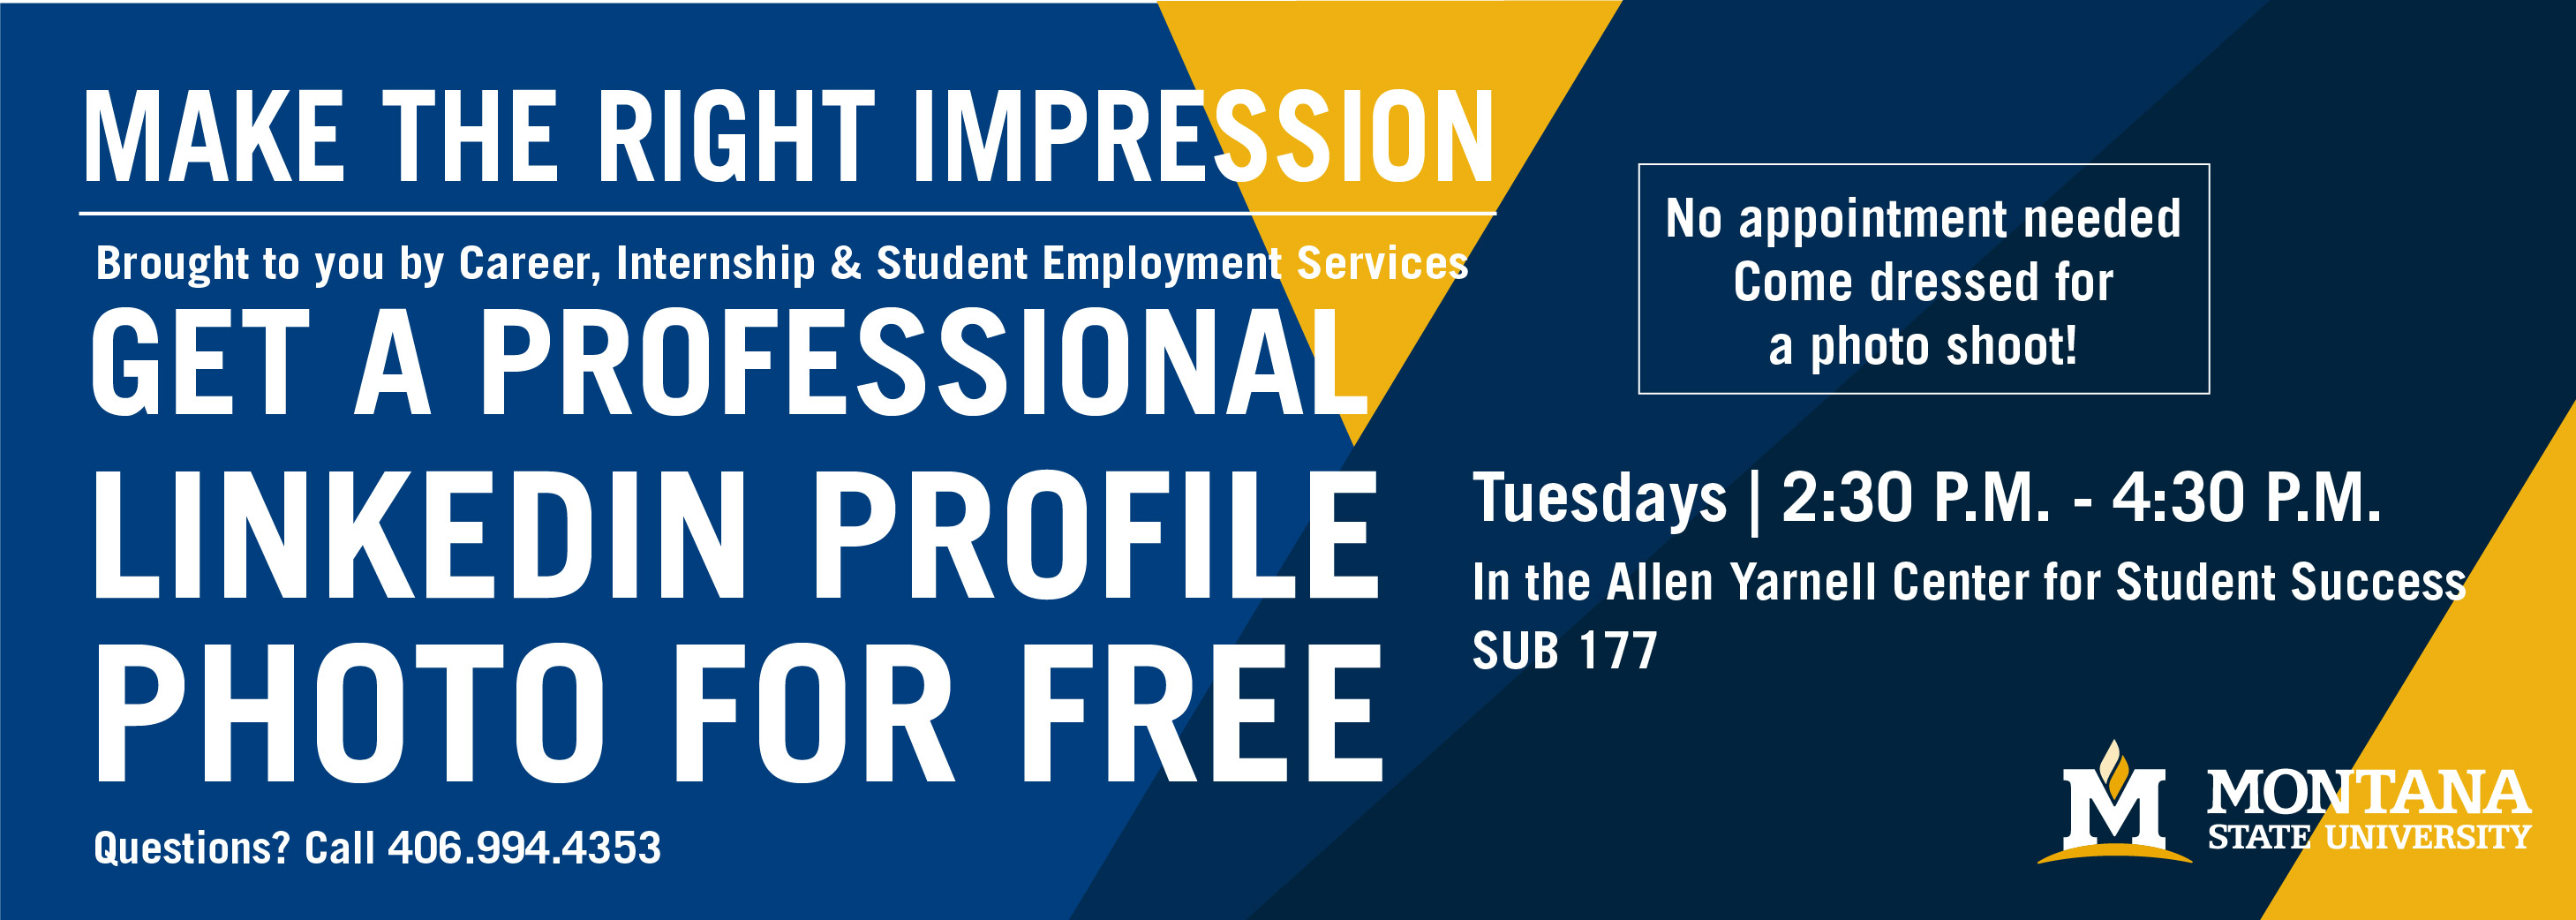 Make the right impression. Get a Professional LinkedIn Headshot. Tuesdays, 2:30-4:30